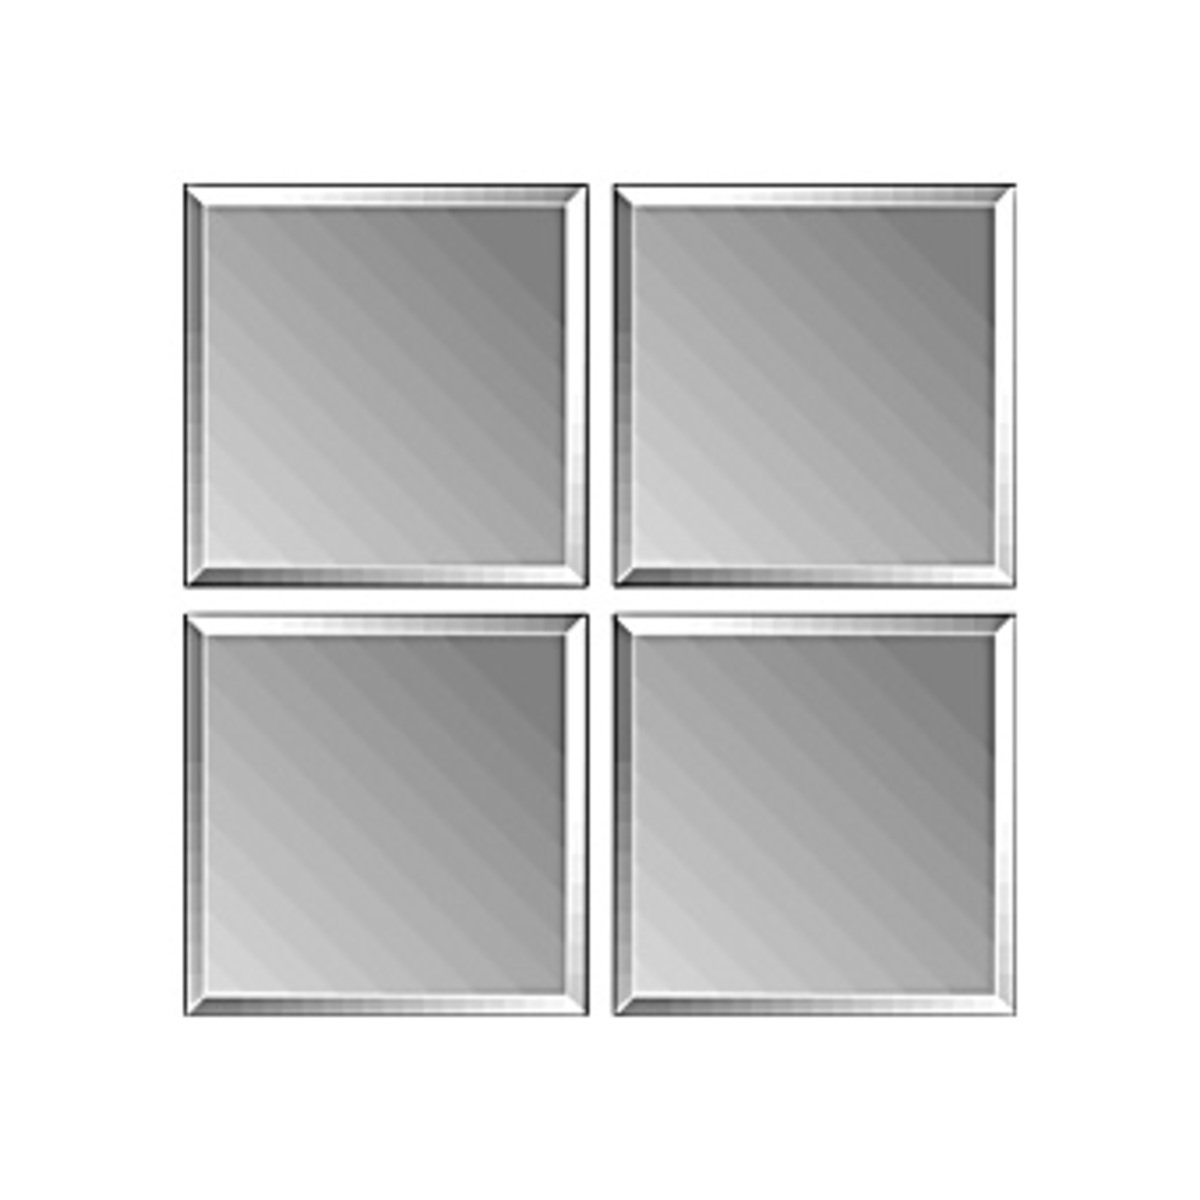 plieger tiles miroir carreaux 3mm 30x30cm par 4 avec biseau et autocollant argent 4350020. Black Bedroom Furniture Sets. Home Design Ideas